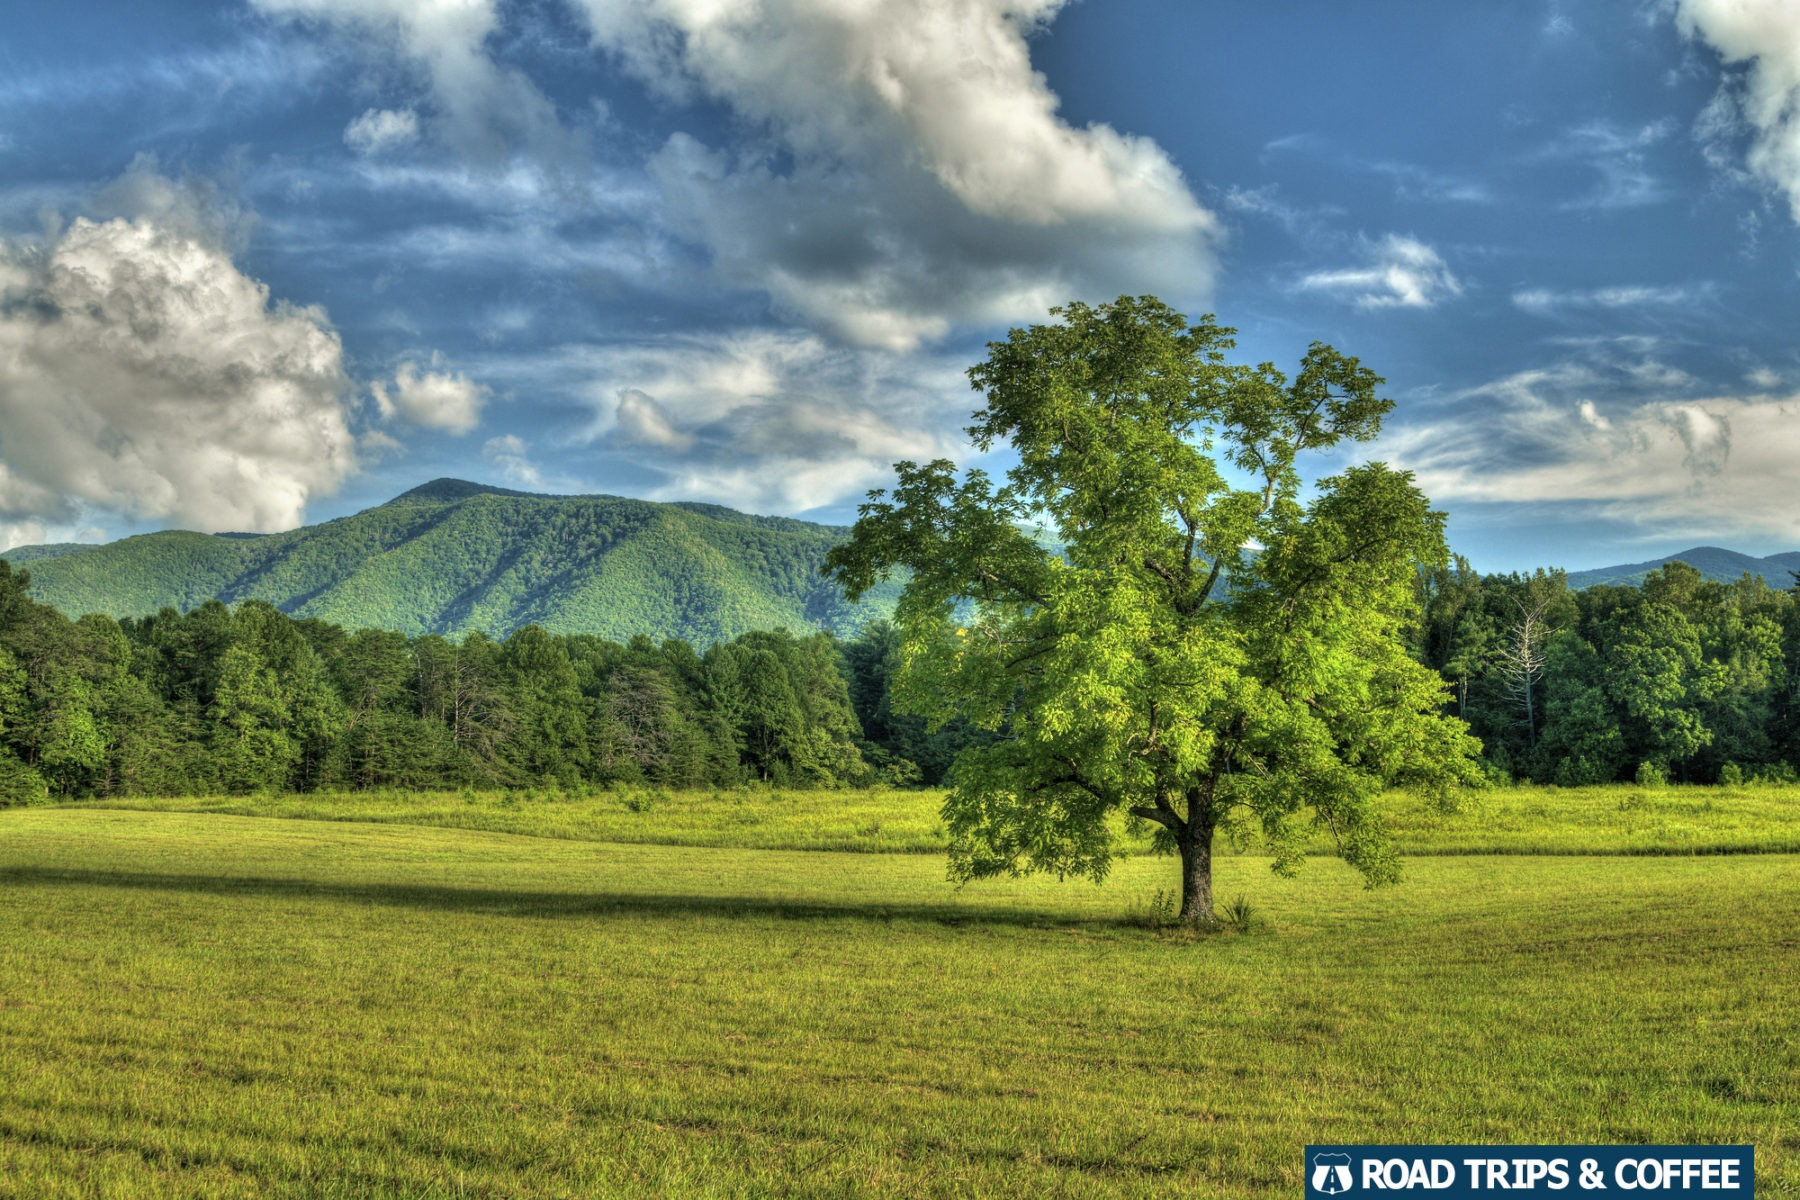 A lone tree in a large field in Cades Cove in the Great Smoky Mountains National Park in Tennessee